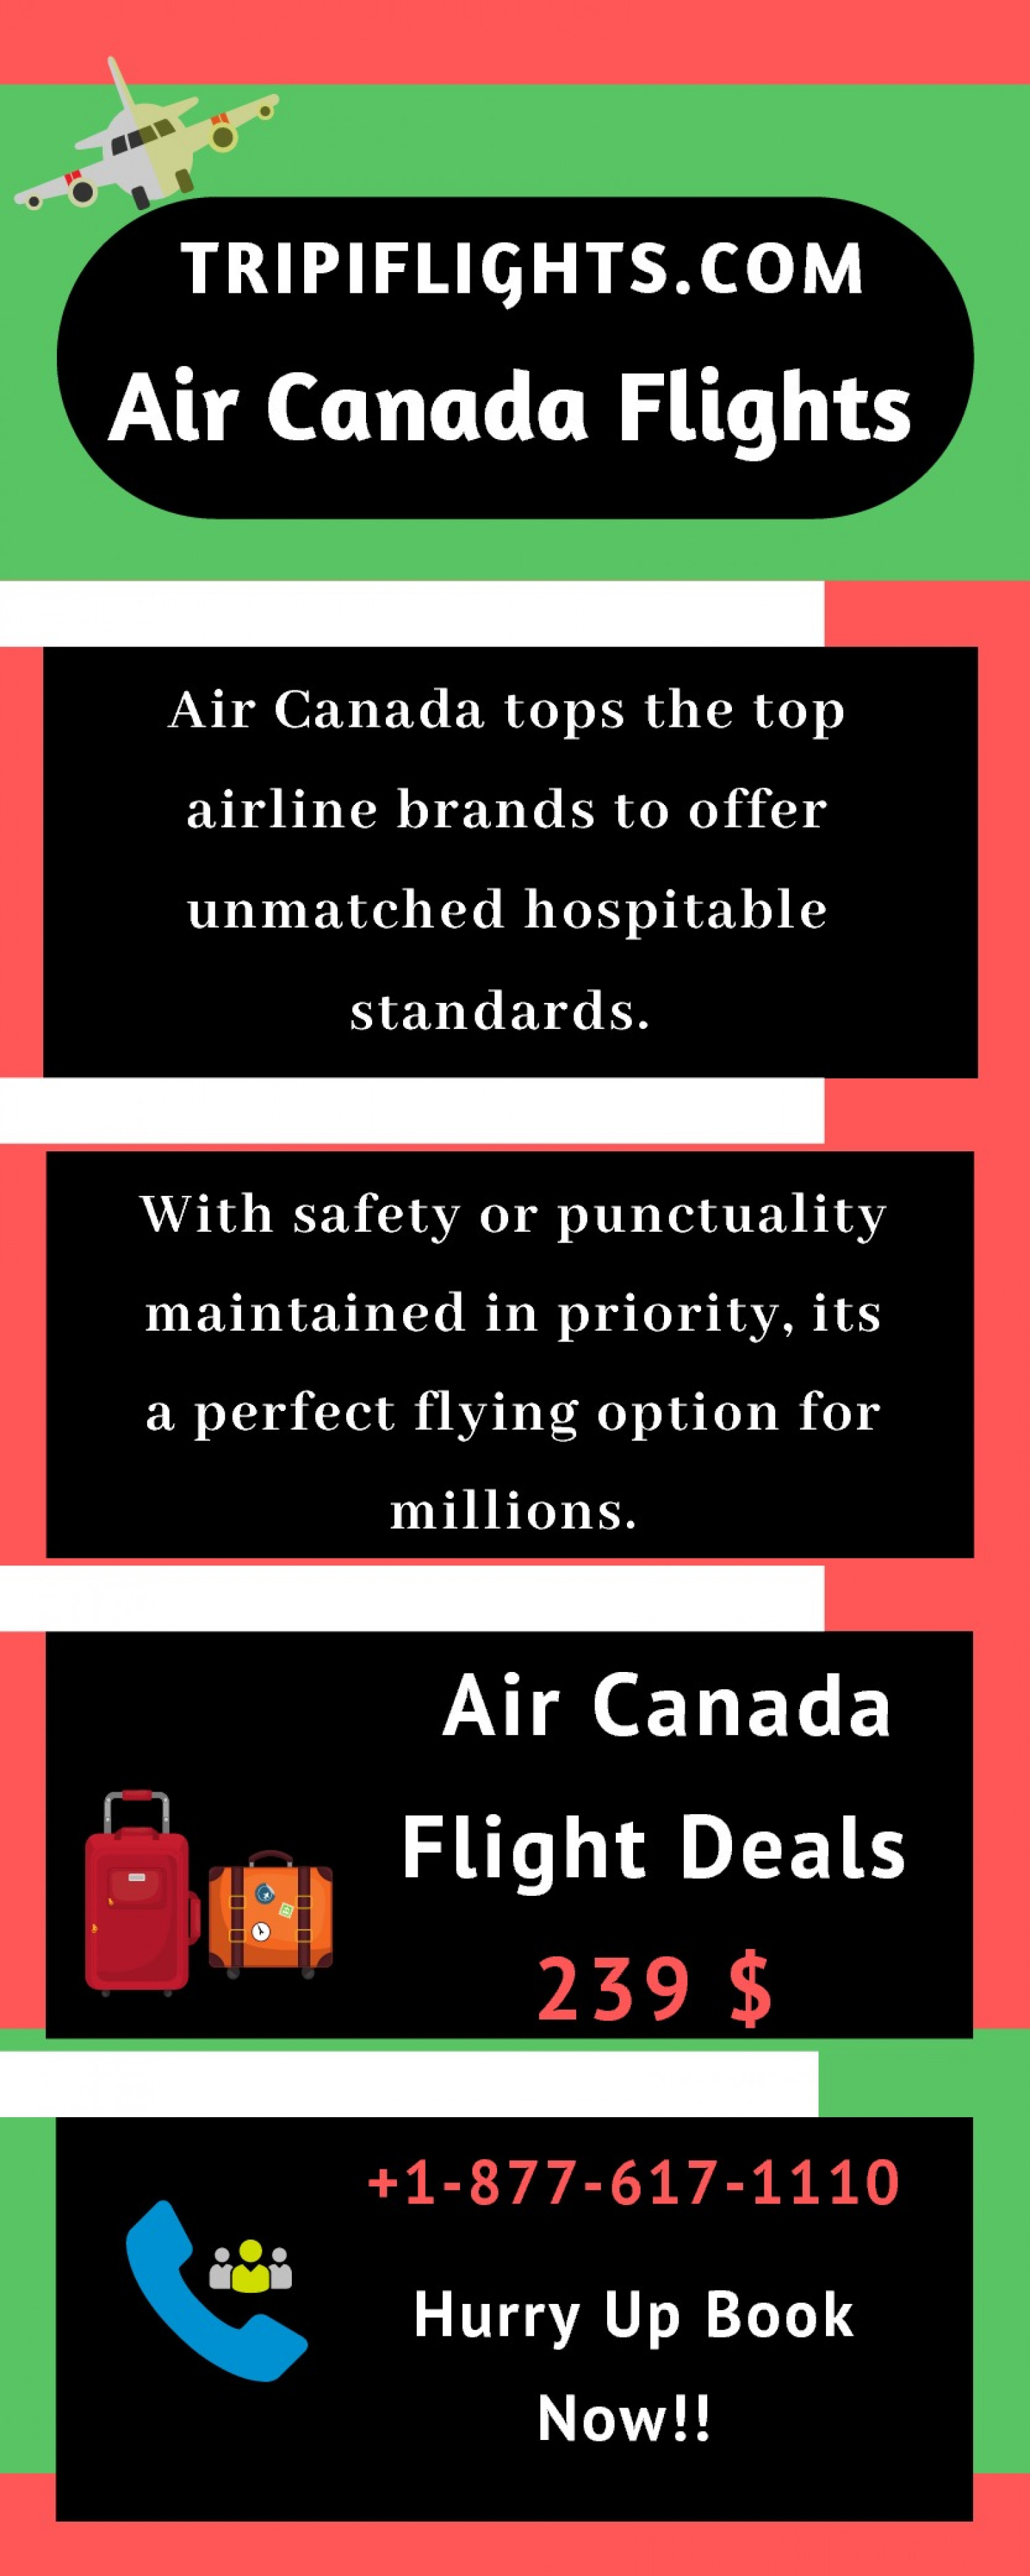 Air Canada Cheap Flights - Air Canada International Flights -Hurry Up!! Infographic